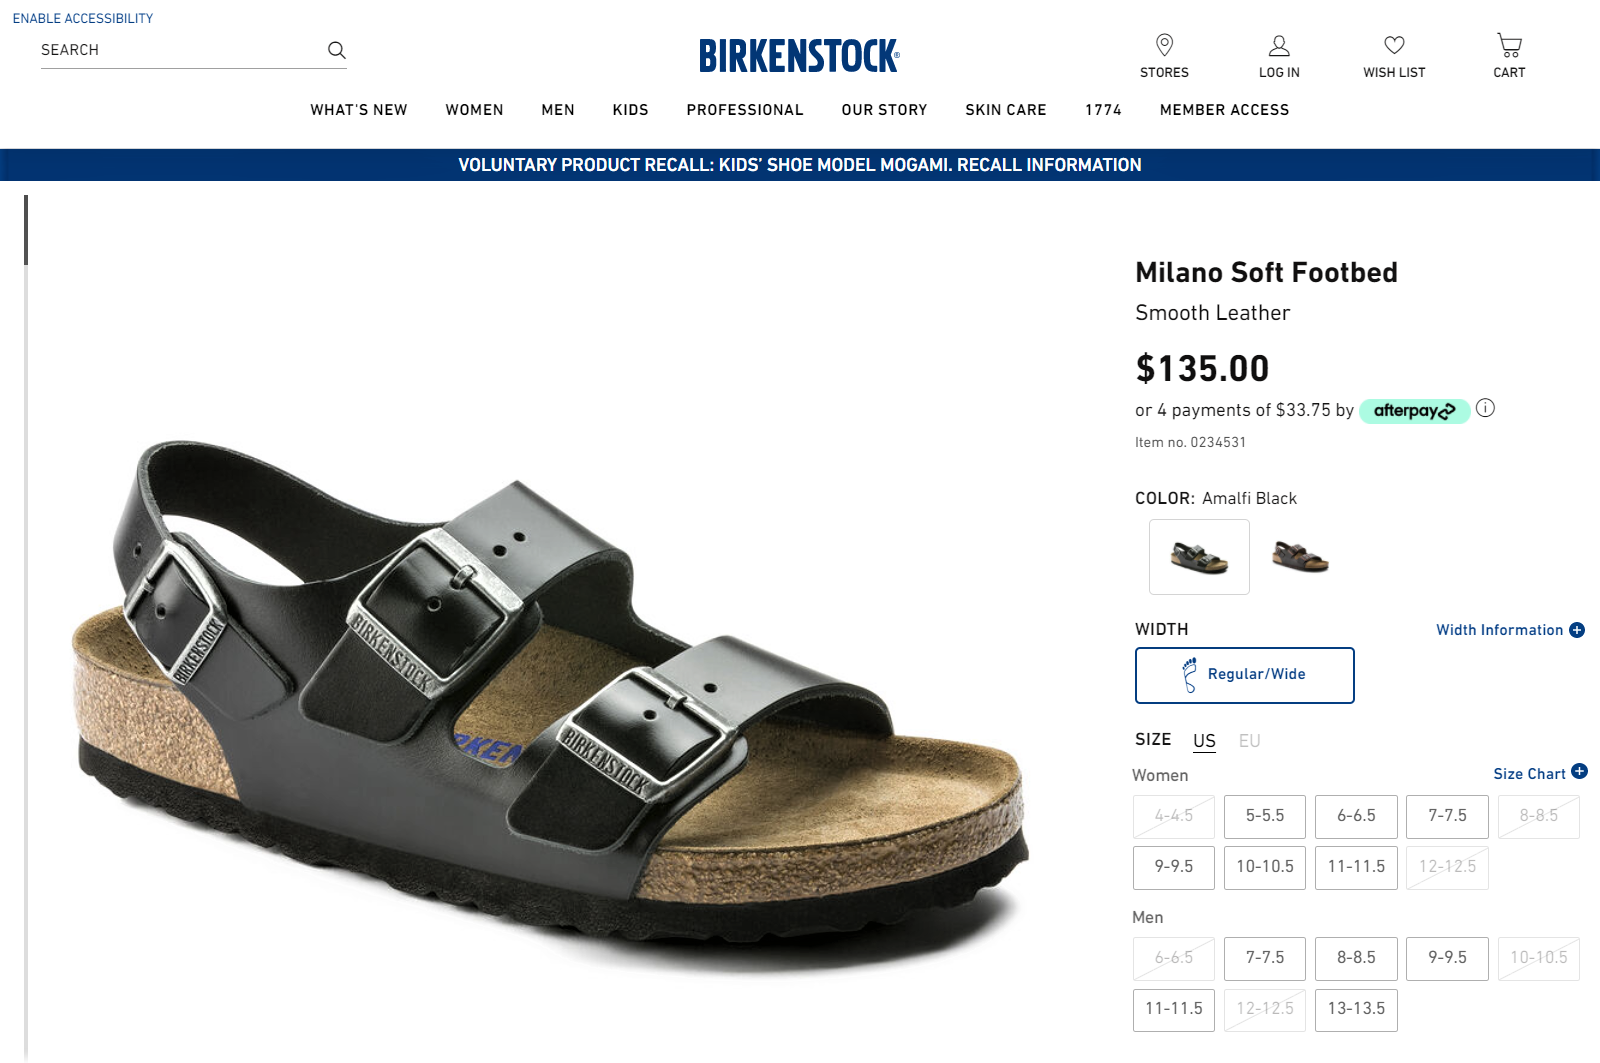 Birkenstock has strategic visuals for their product page